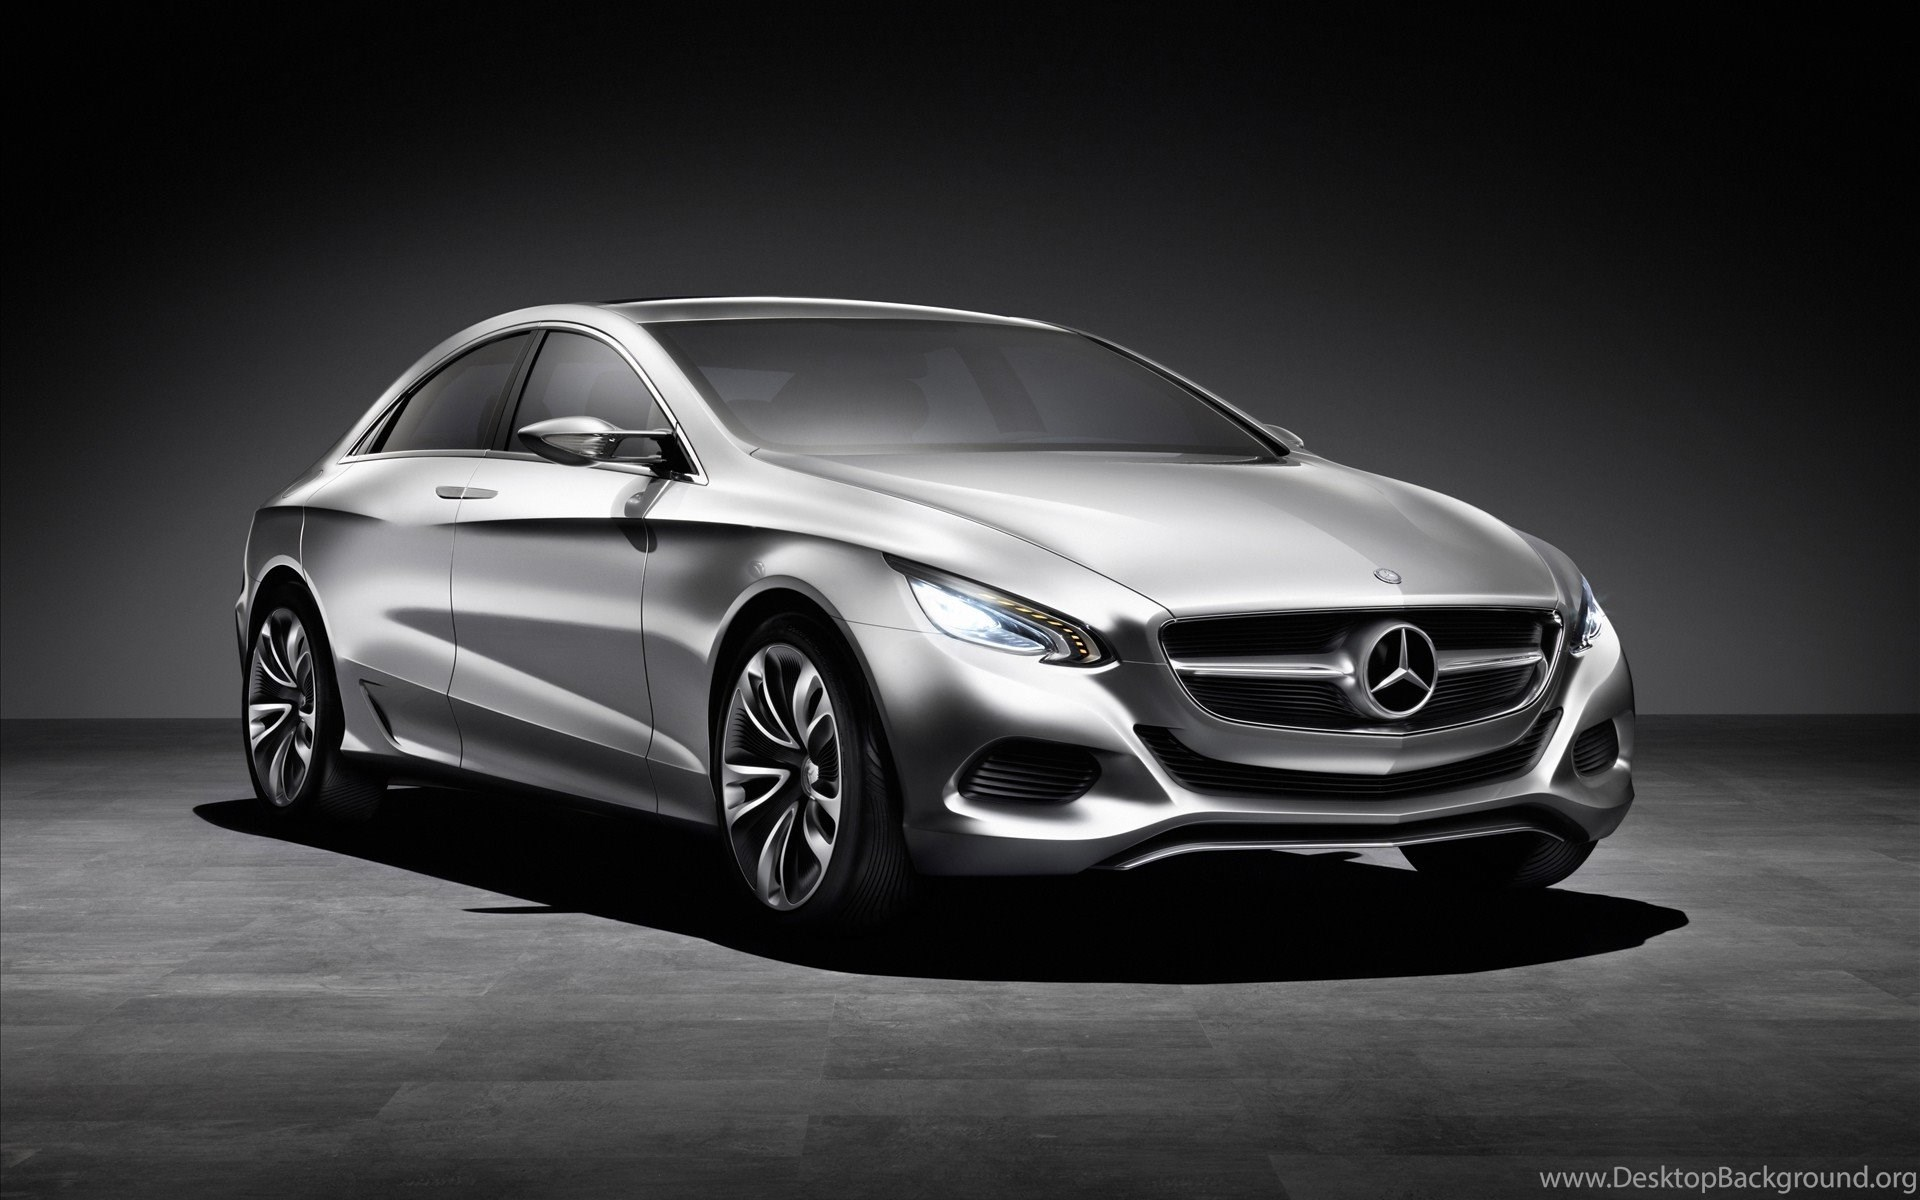 Awesome Mercedes Benz Cars Wallpapers Hd Desktop Background